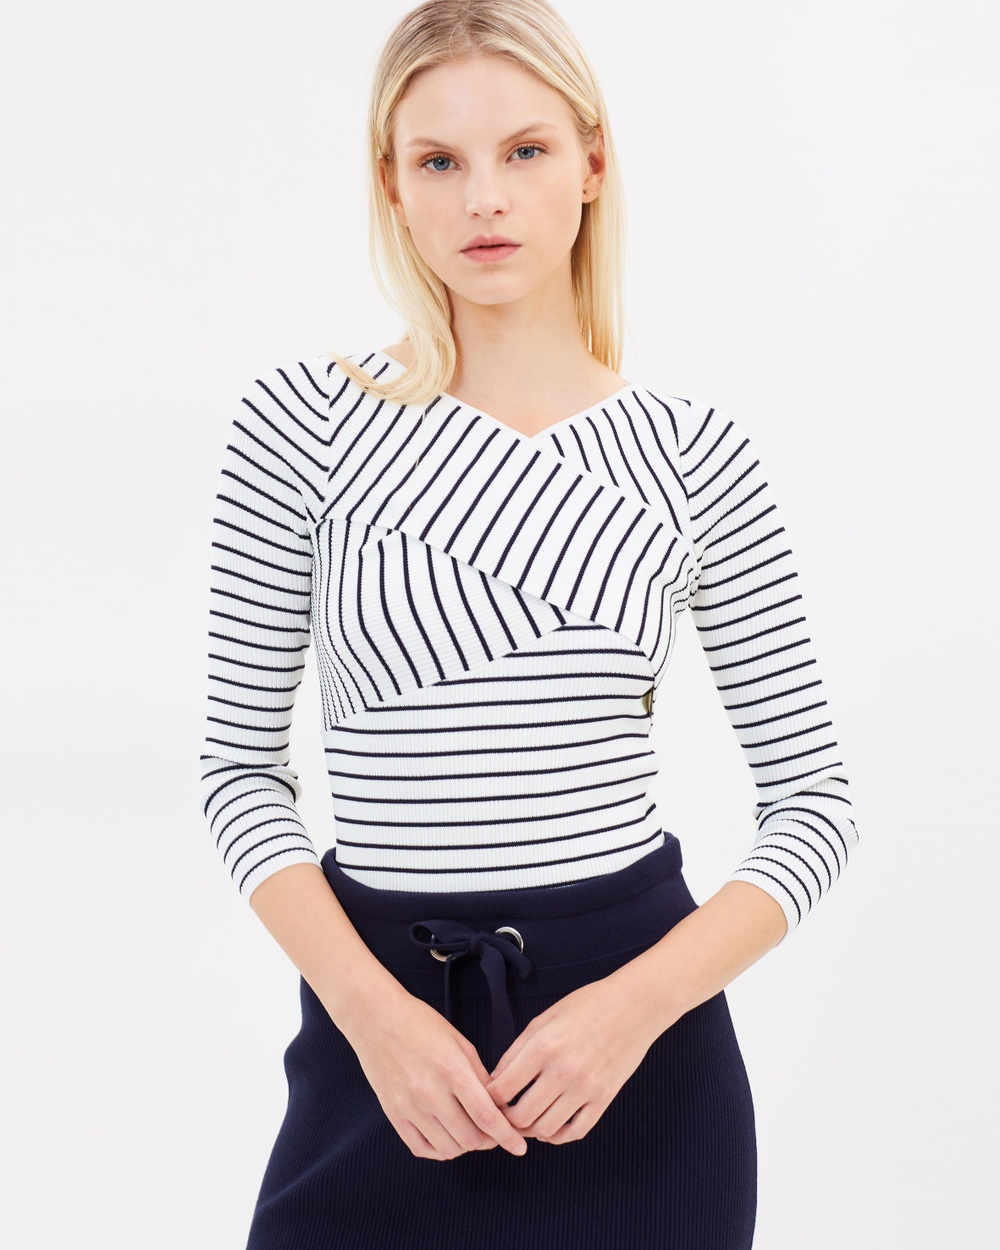 Whistles Wrap Front Stripe Knit Top Tops Multi Wrap Front Stripe Knit Top